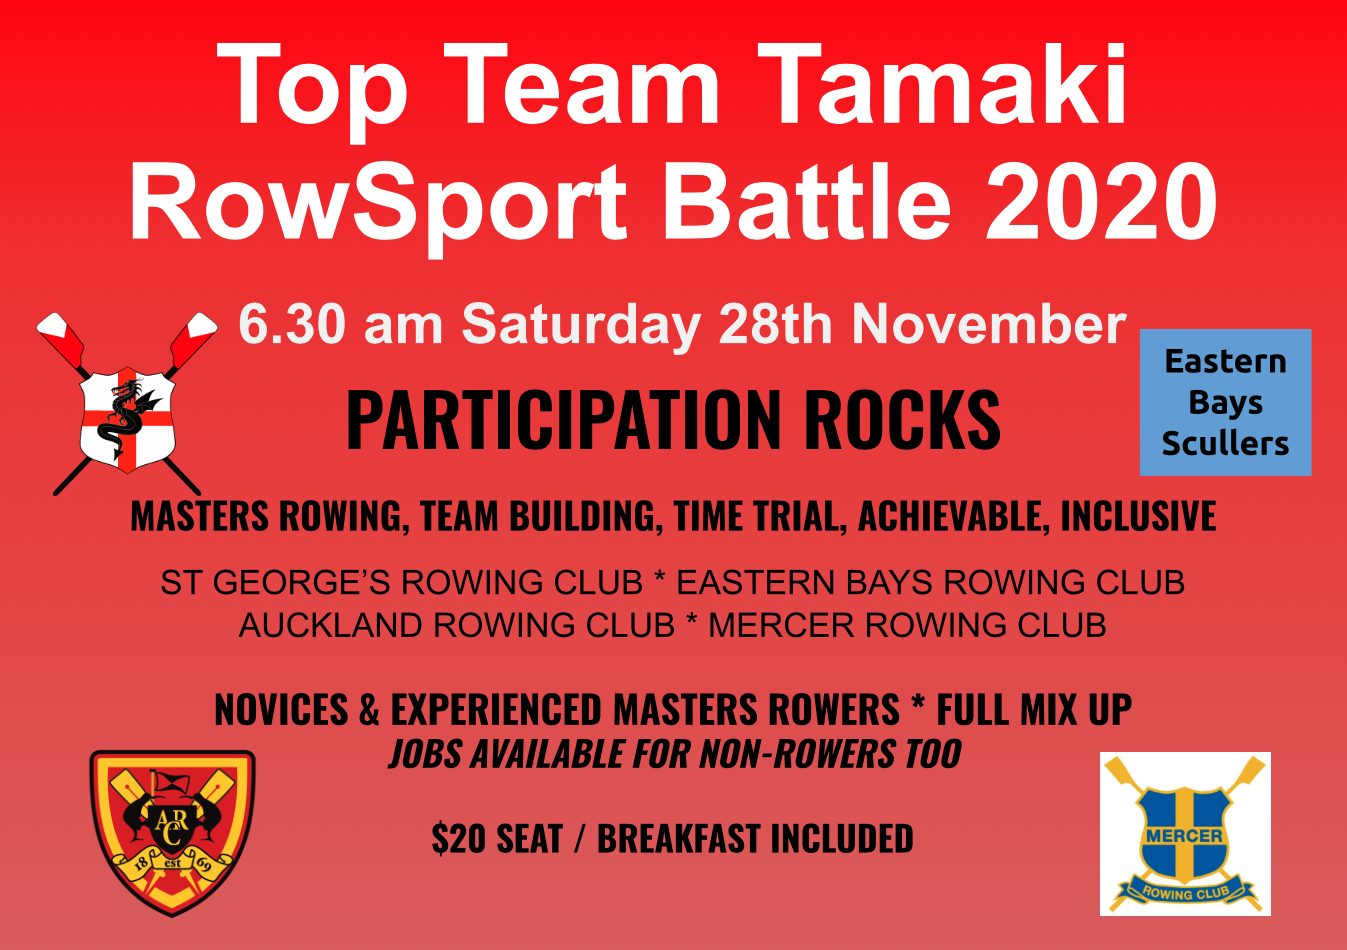 Tamaki Top Team RowSport Masters Regatta Saturday 28 Nov 2020